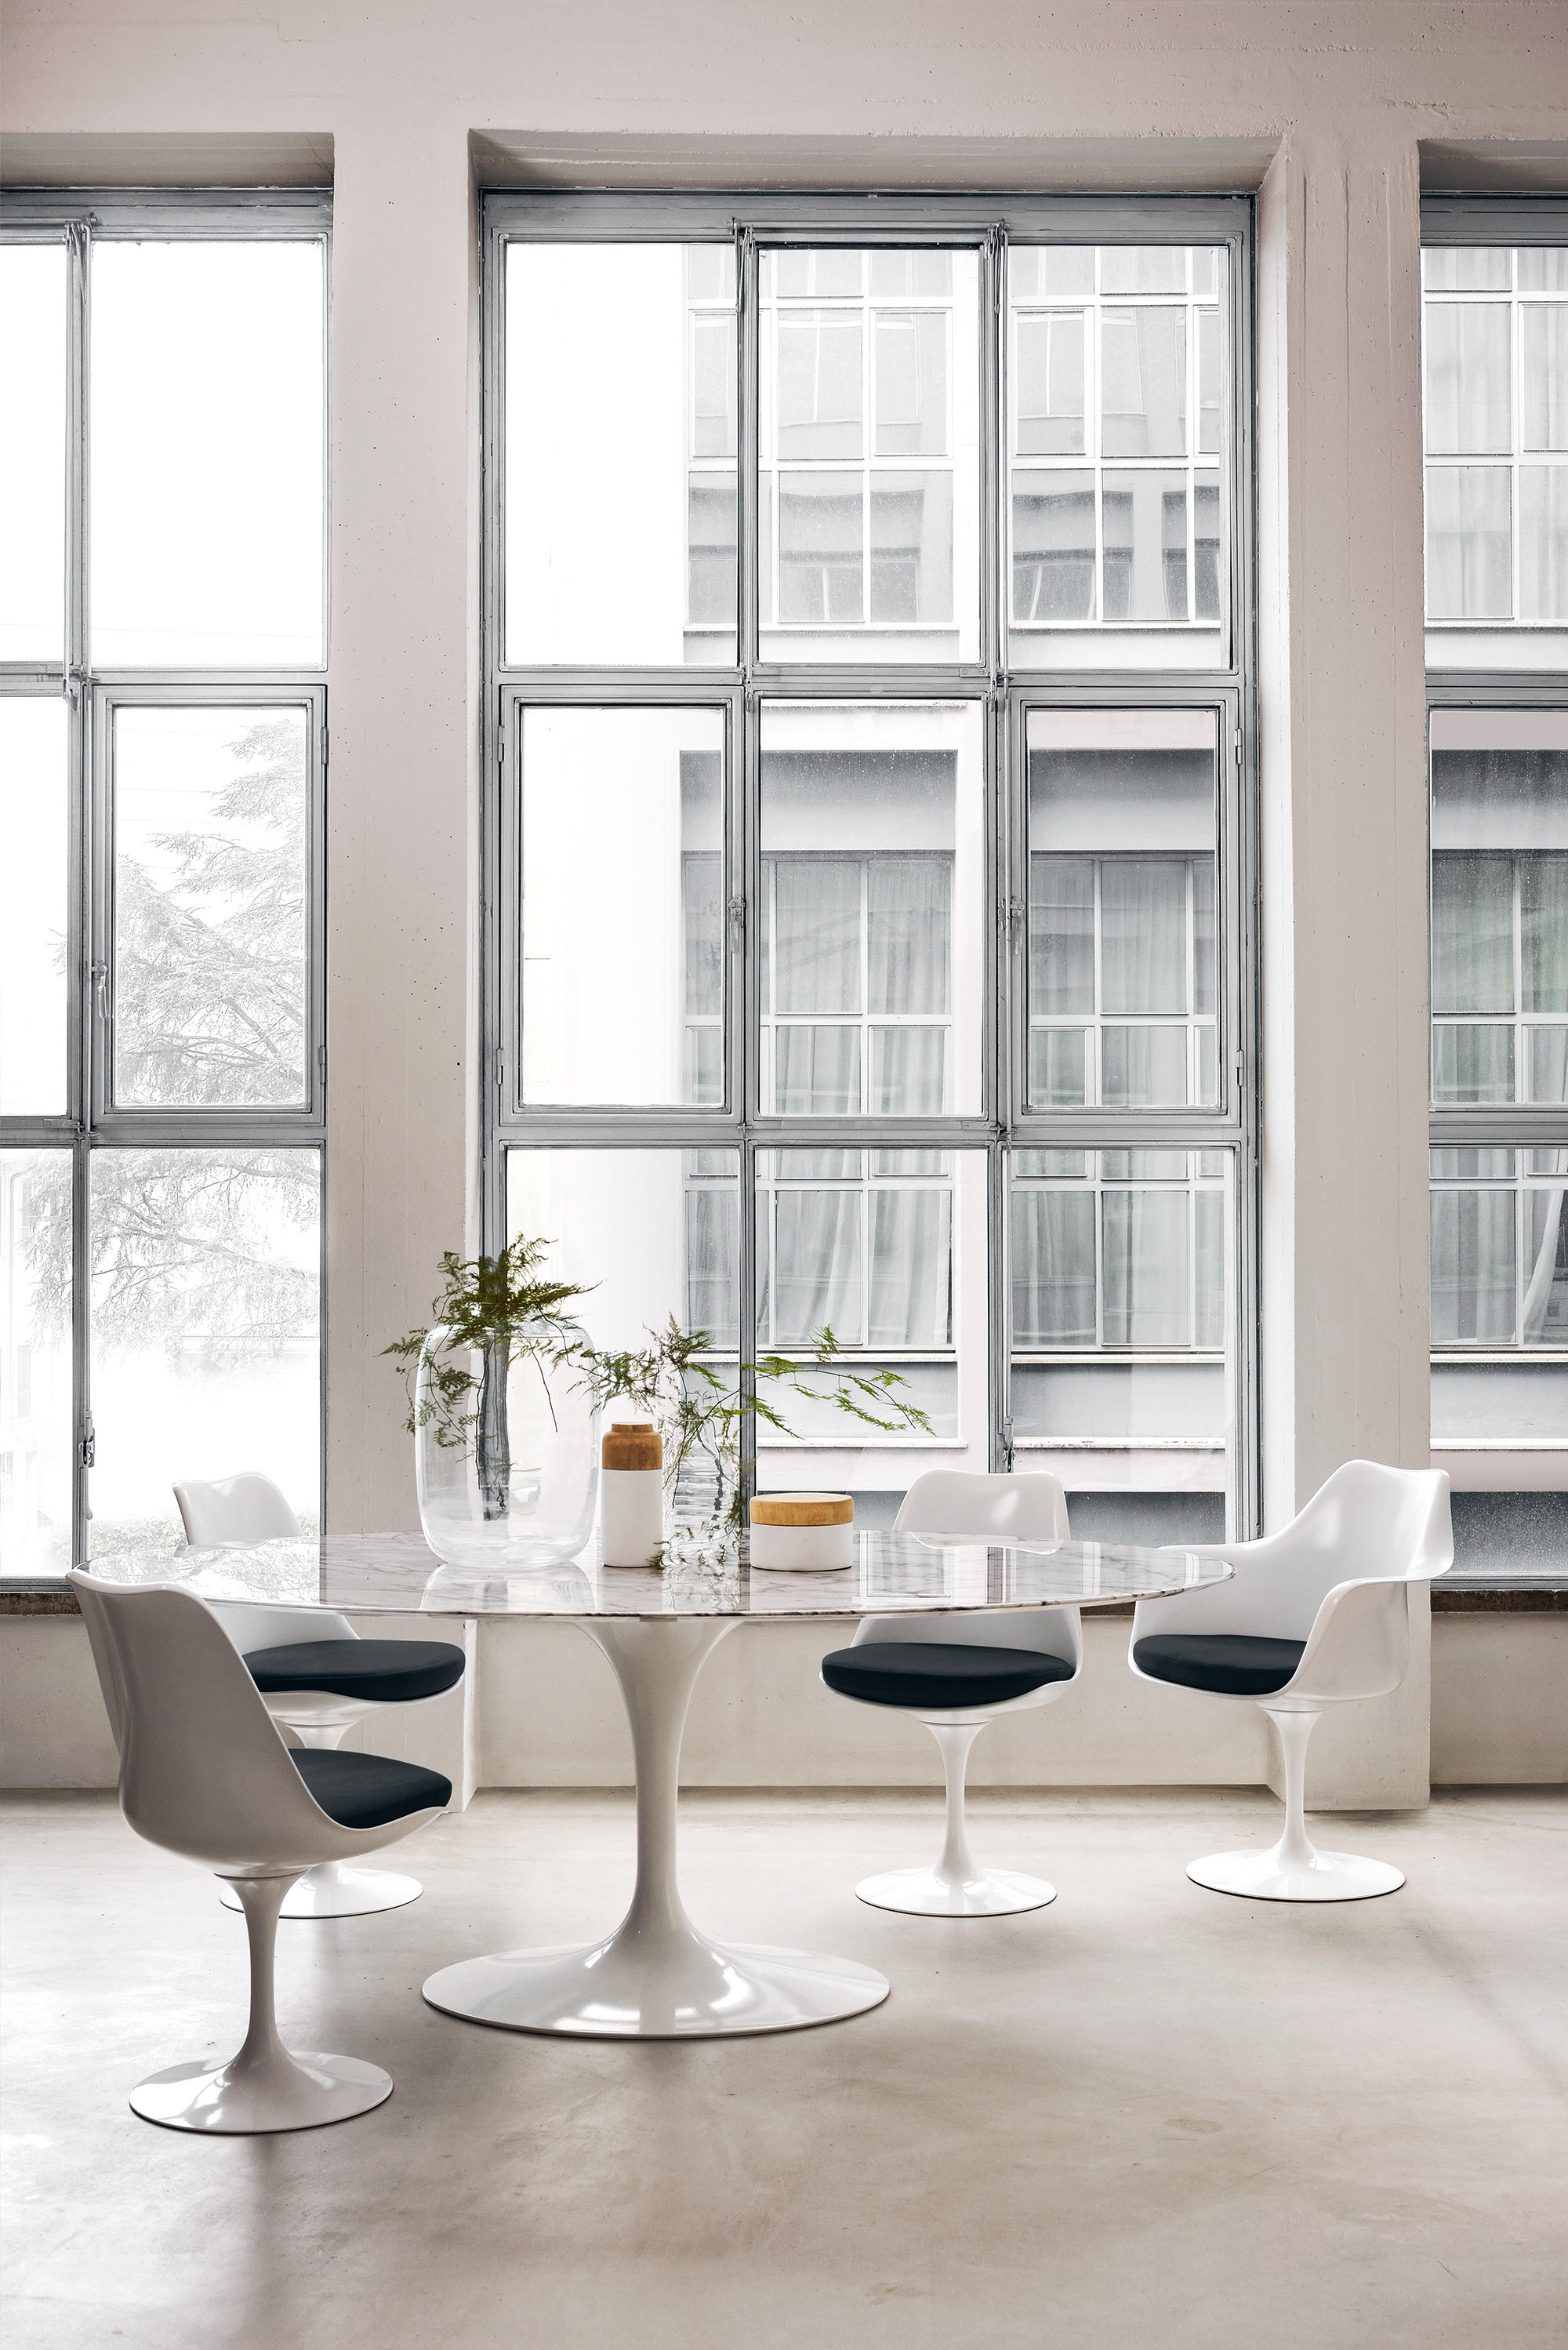 & SAARINEN CONFERENCE CHAIR - Chairs from Knoll International | Architonic